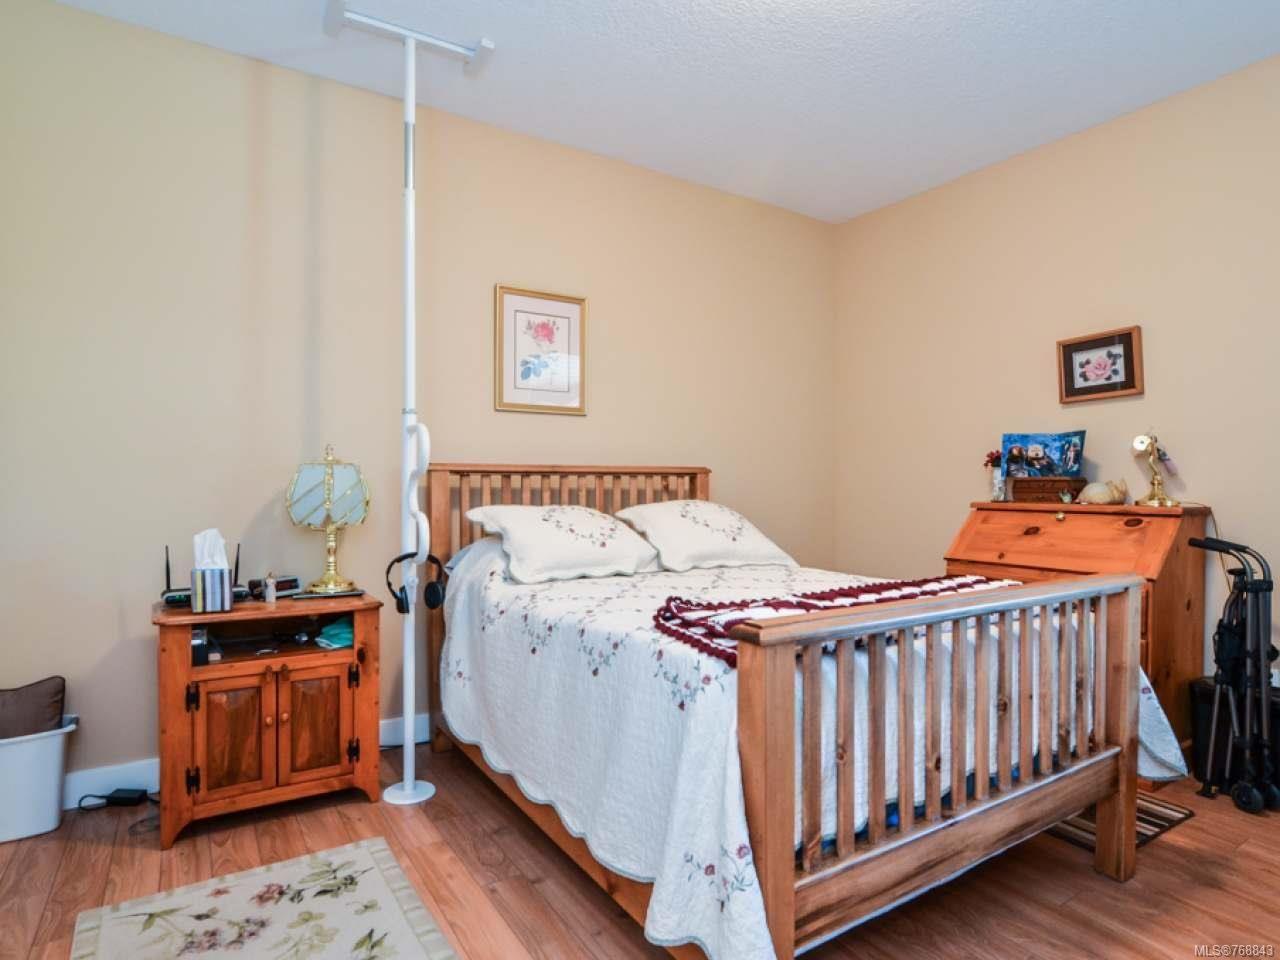 Photo 19: Photos: 15 346 Erickson Rd in CAMPBELL RIVER: CR Willow Point Row/Townhouse for sale (Campbell River)  : MLS®# 768843